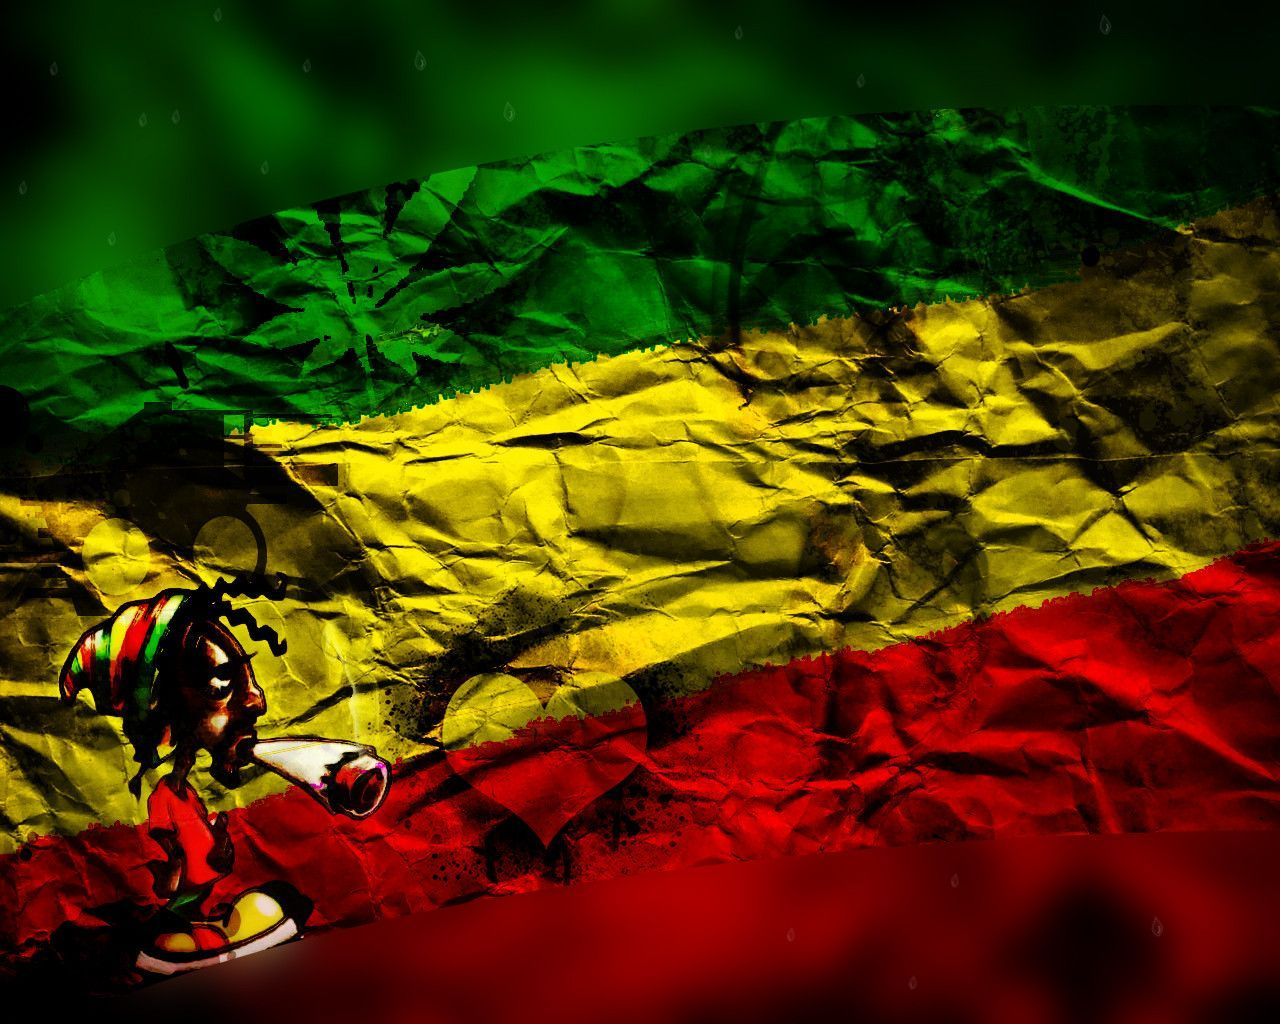 Download free reggae wallpapers for your mobile phone most 1920 1200 imagenes de reggae - Rasta bob live wallpaper free download ...